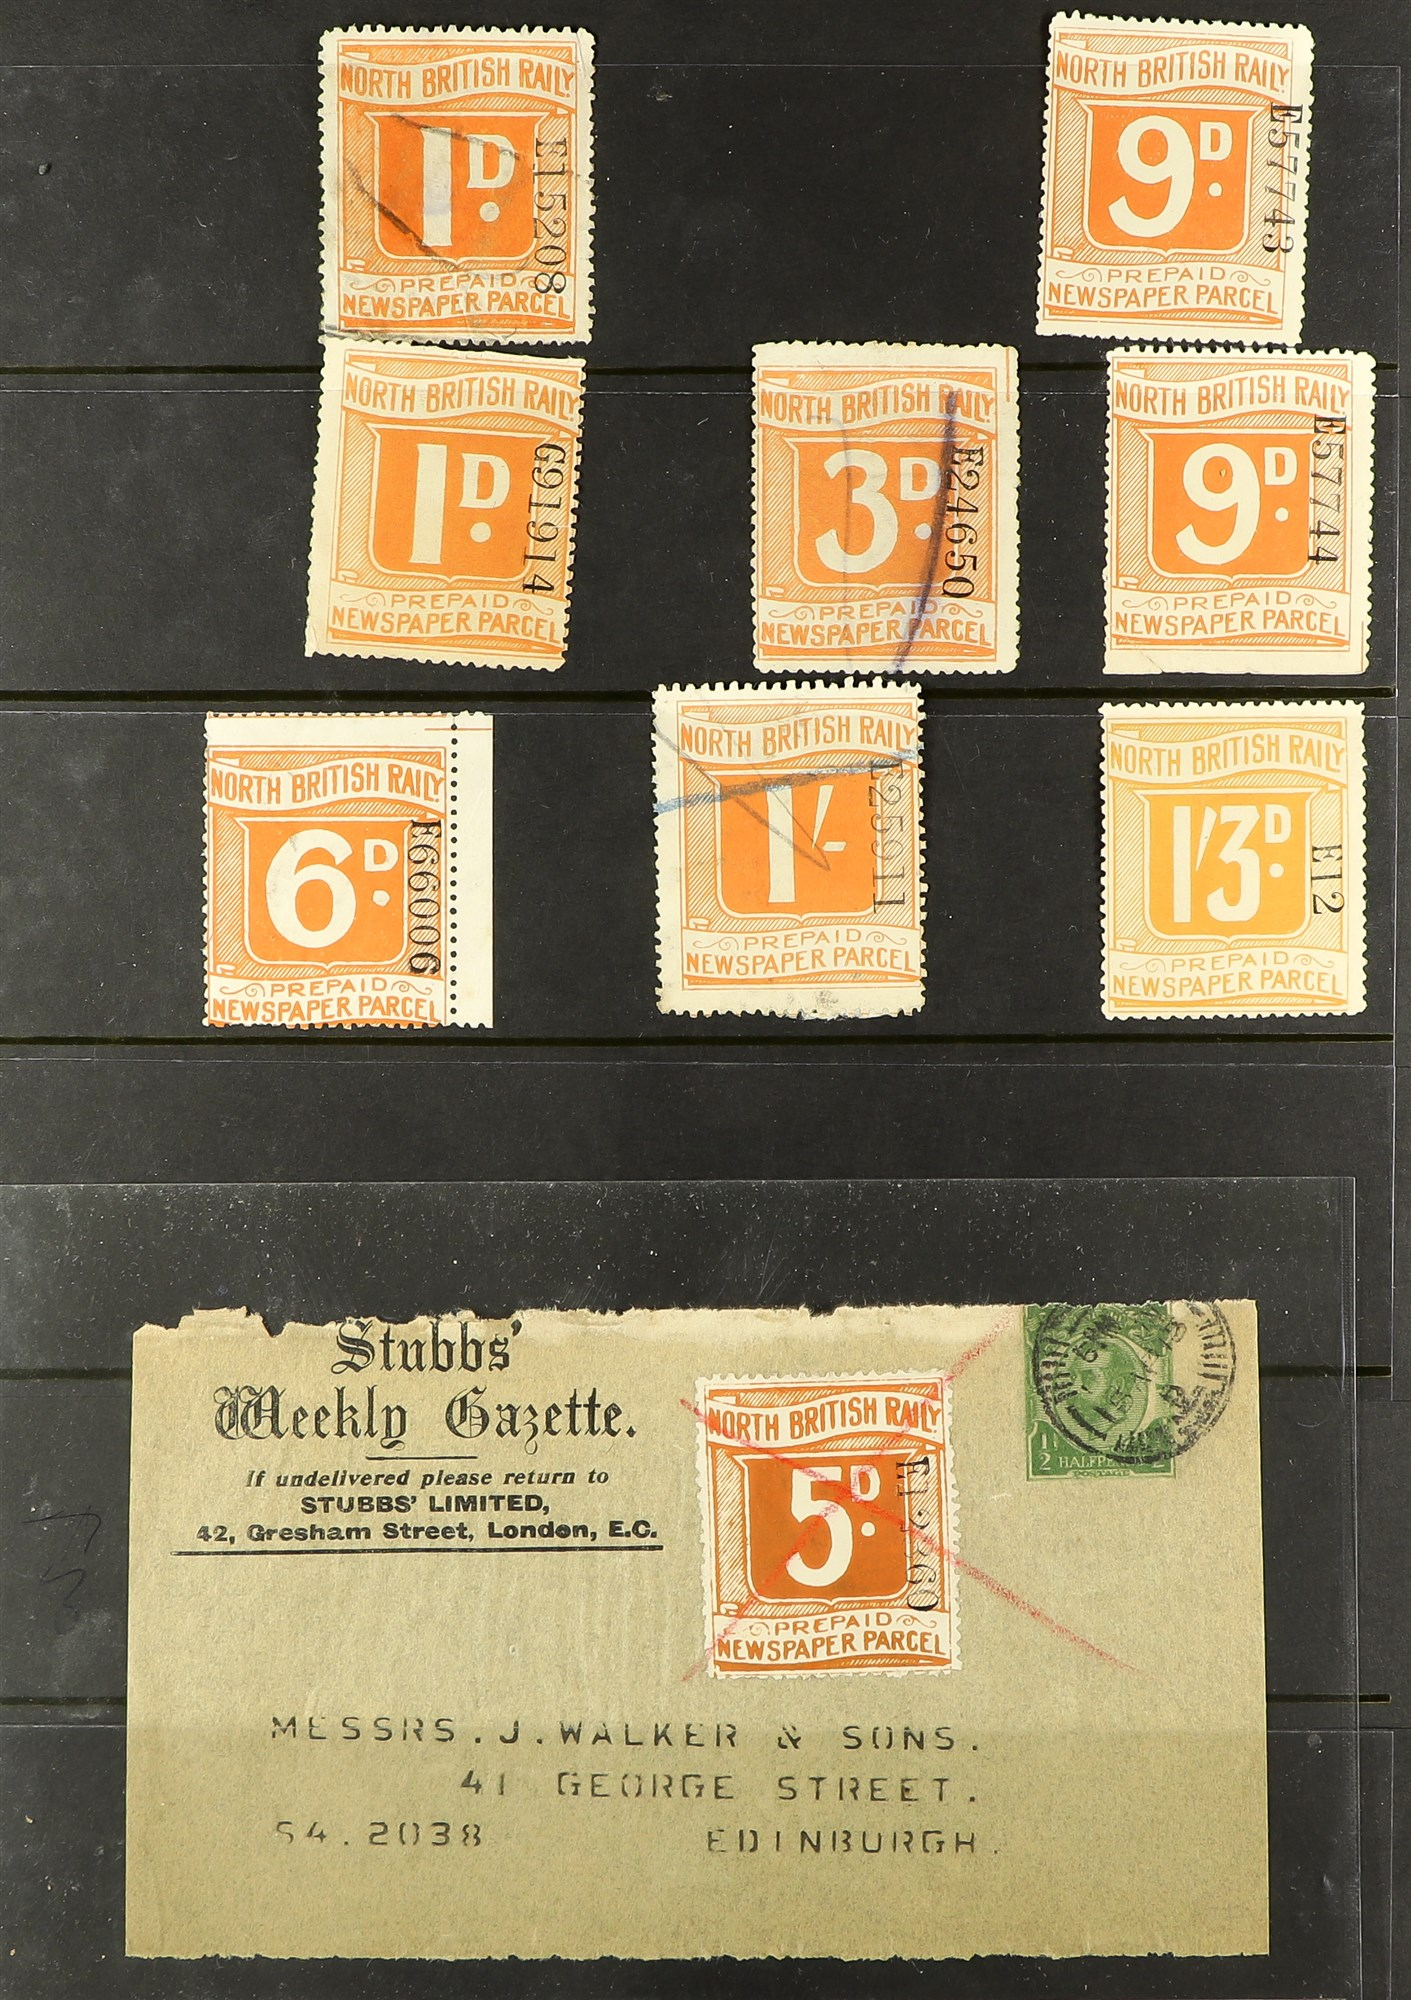 GREAT BRITAIN RAILWAY LETTER AND NEWSPAPER STAMPS 1890's-1940's COLLECTION in two albums, mint and - Image 22 of 24